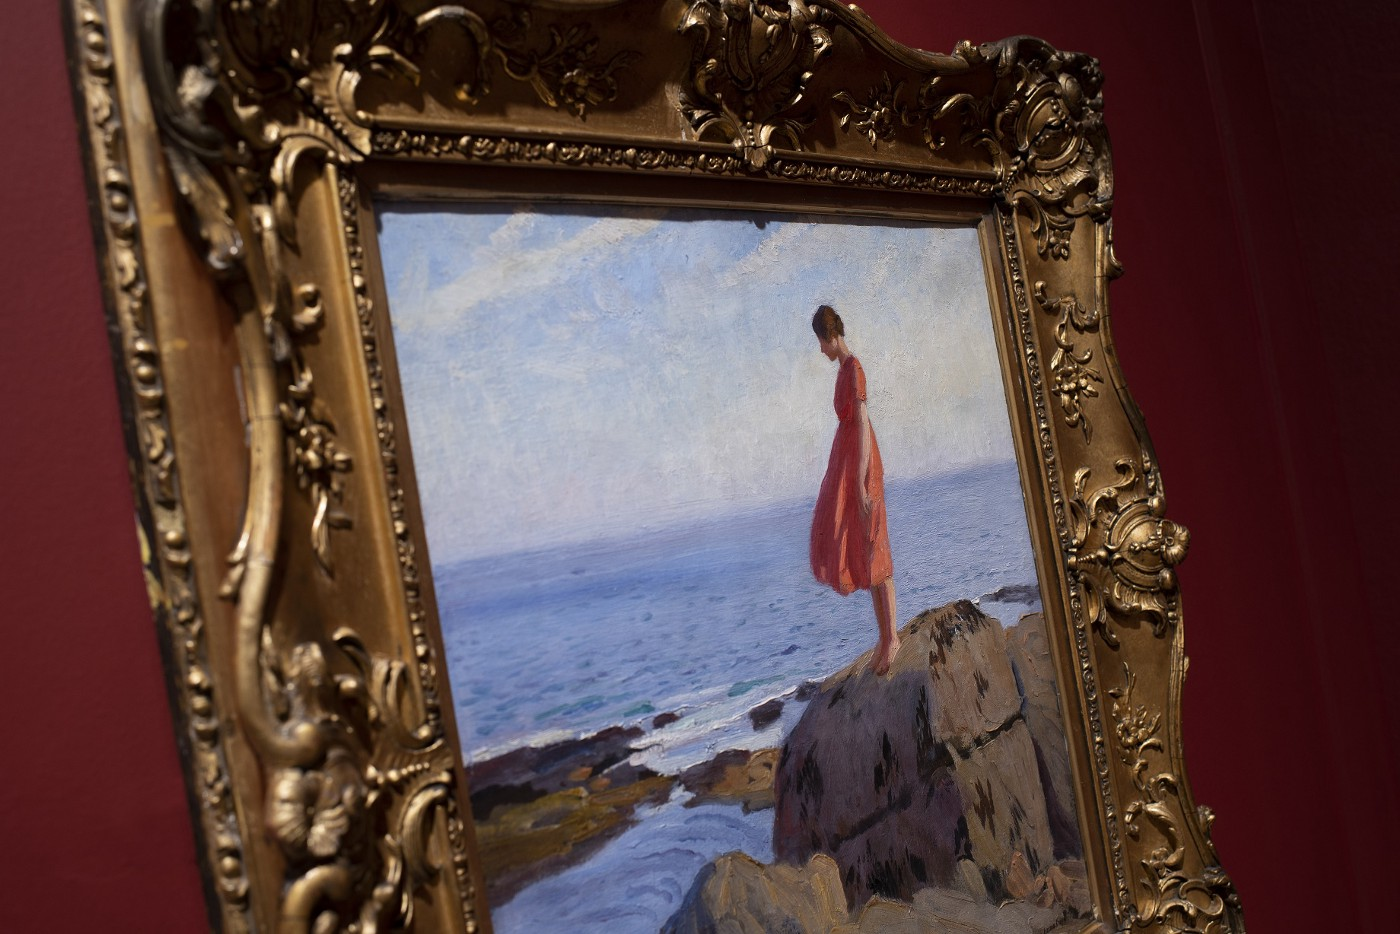 Close up of gold frame against a red wall, showing a painting of a woman in a red dress on a rock, looking out to sea